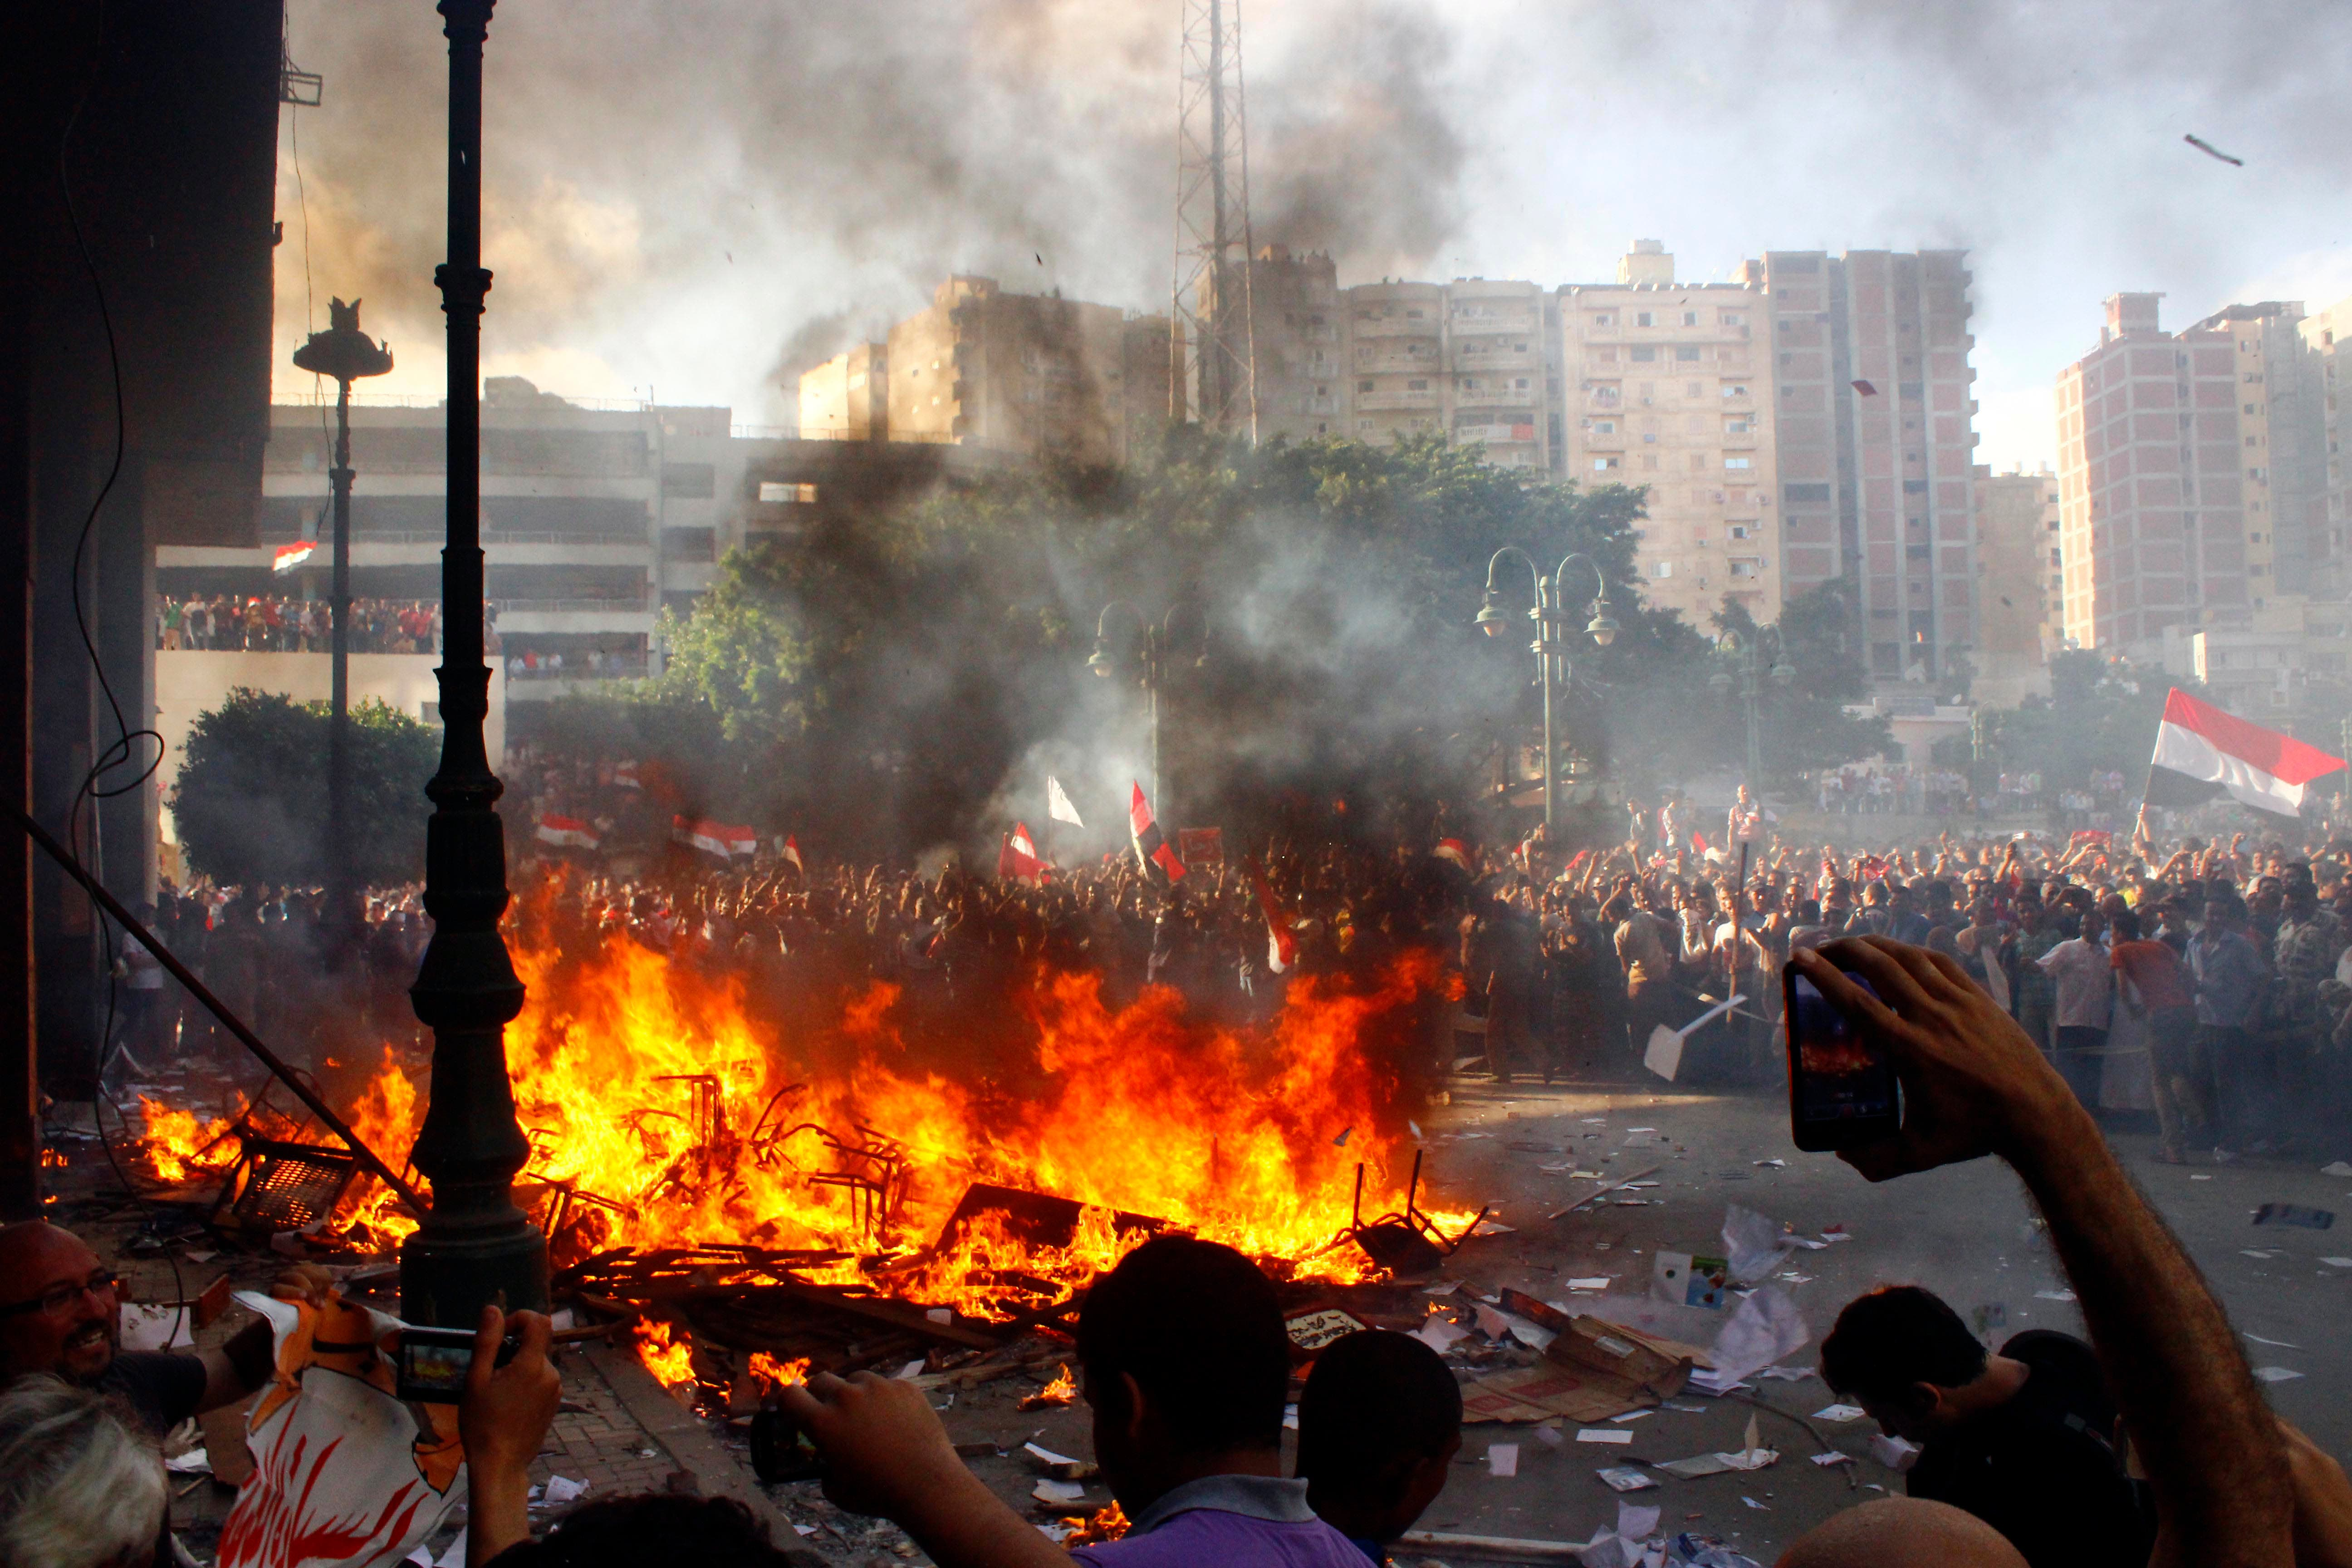 Opponents of Egyptian President Mohamed Morsi burn the content of a Freedom and Justice Party office in the coastal city of Alexandria on June 28, 2013. One person was killed and more than 70 injured in Egypt's second city of Alexandria on Friday as clashes raged between supporters and opponents of Islamist President Mohamed Morsi, state media reported. (Source: AFP)